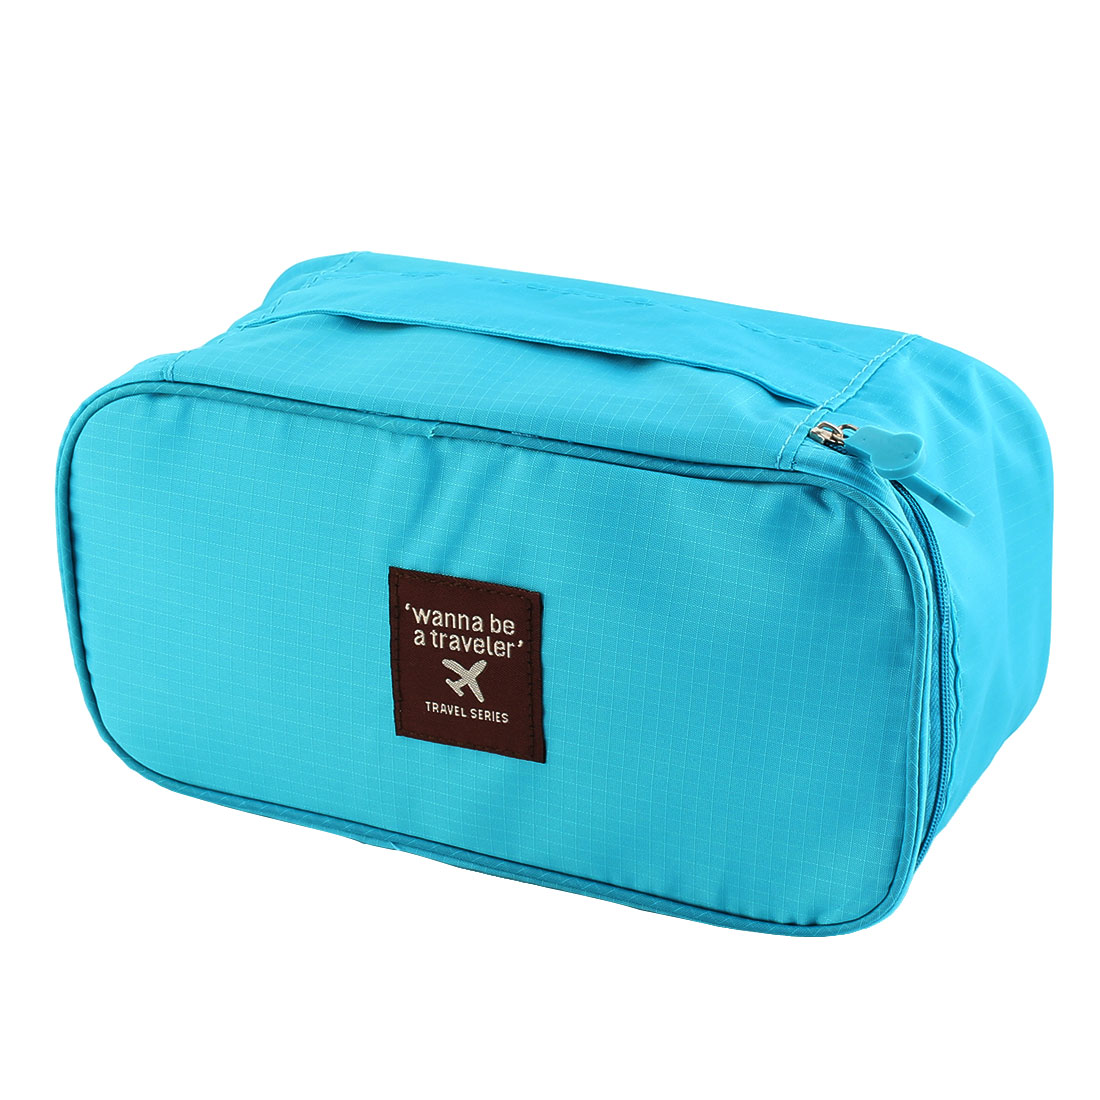 Travelling Business Trip Socks Underwear Bra Organizer Packing Bag Case Container Sky Blue